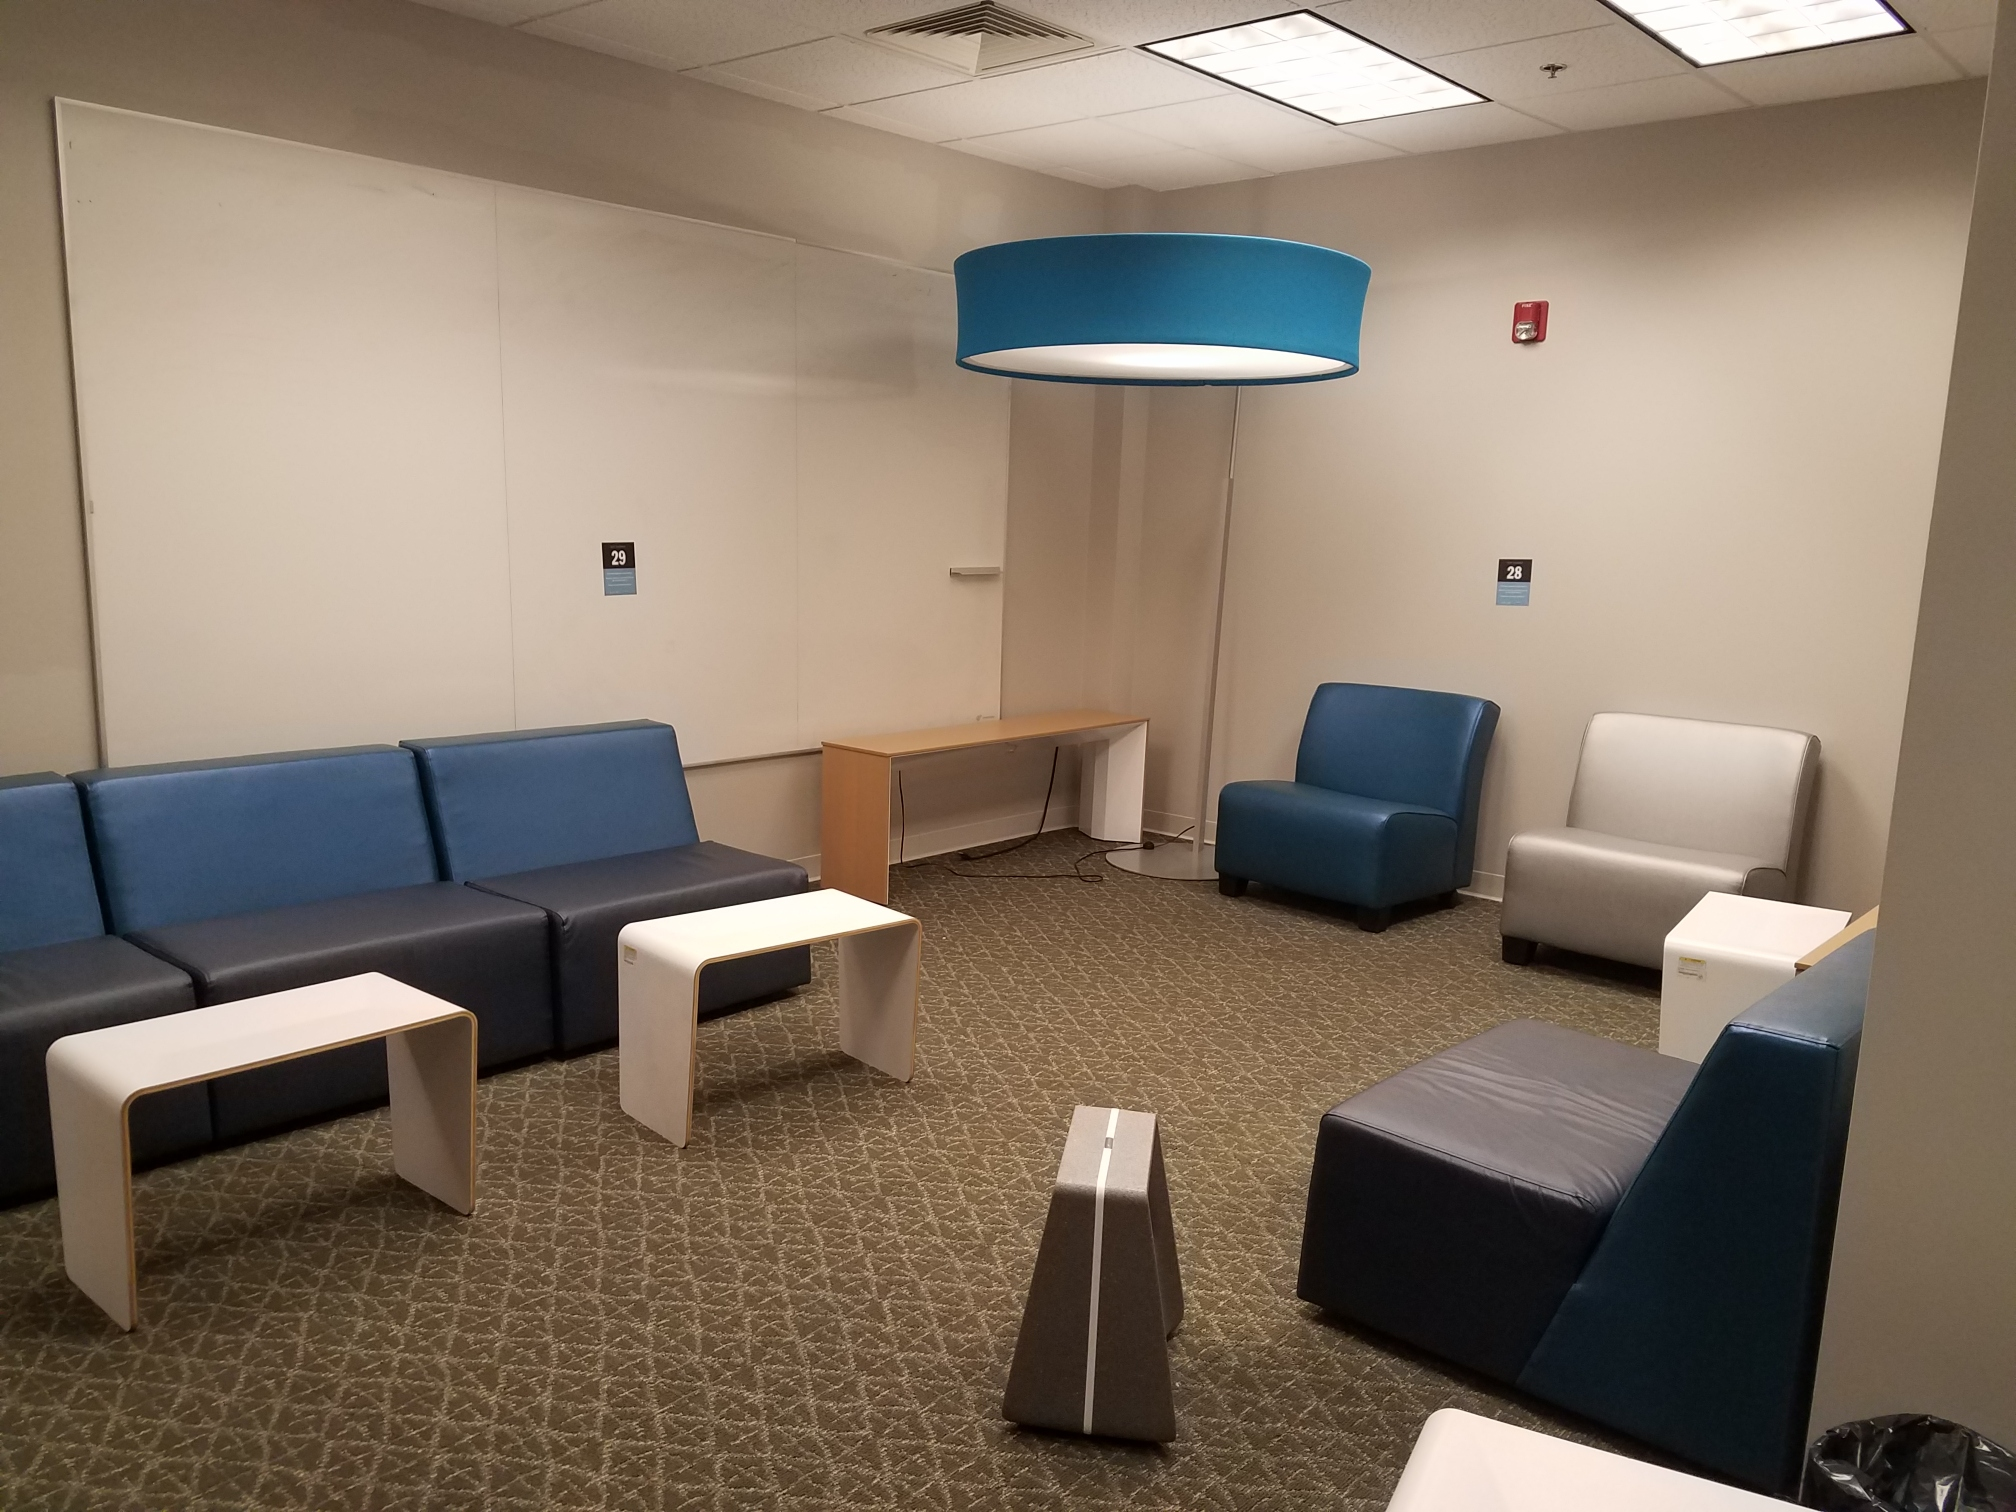 couches and small tables, with a large whiteboard.